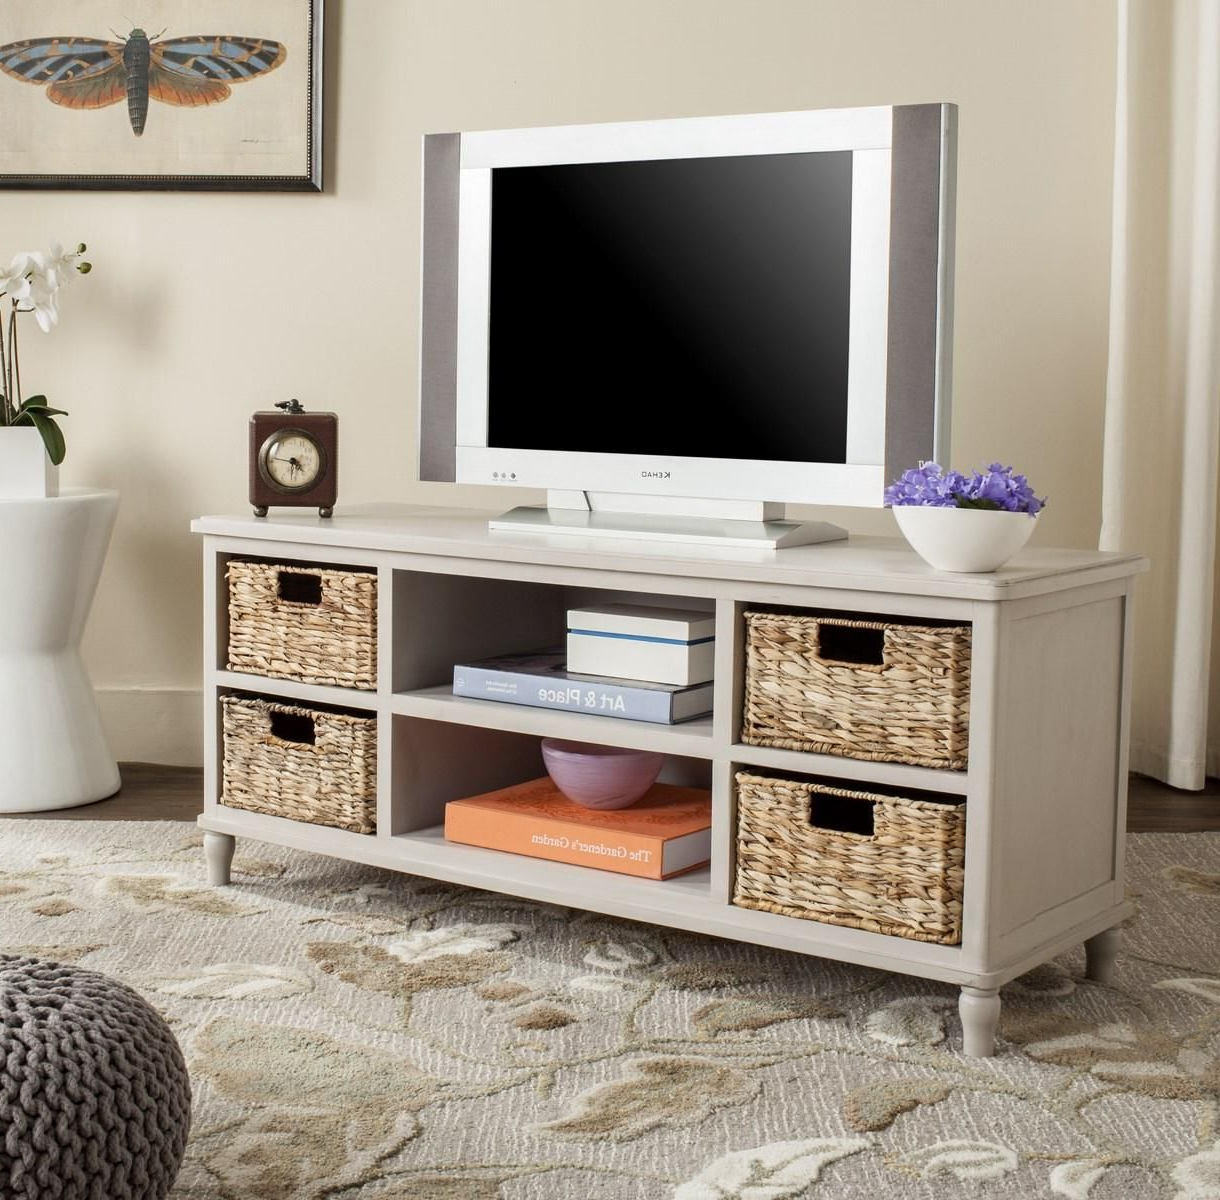 Amh5745D Tv Cabinet – Furniture| Home Decor | Entertainment Throughout Natural Cane Media Console Tables (Gallery 2 of 20)